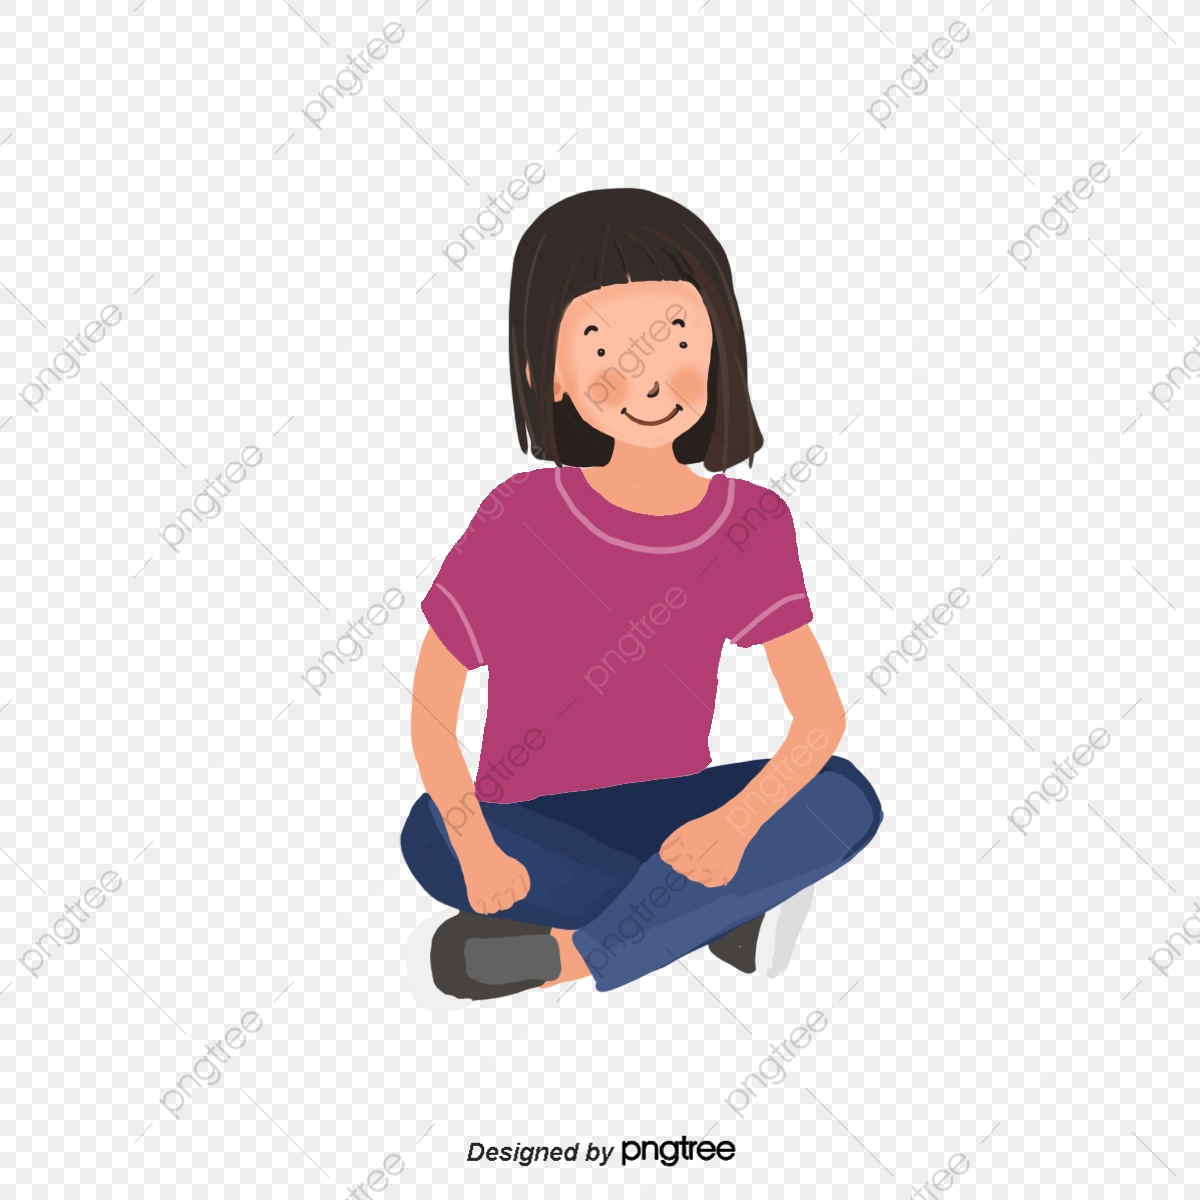 Cartoon Girls Sit Cross Legged Element Cartoon Style Sitting Png Transparent Clipart Image And Psd File For Free Download